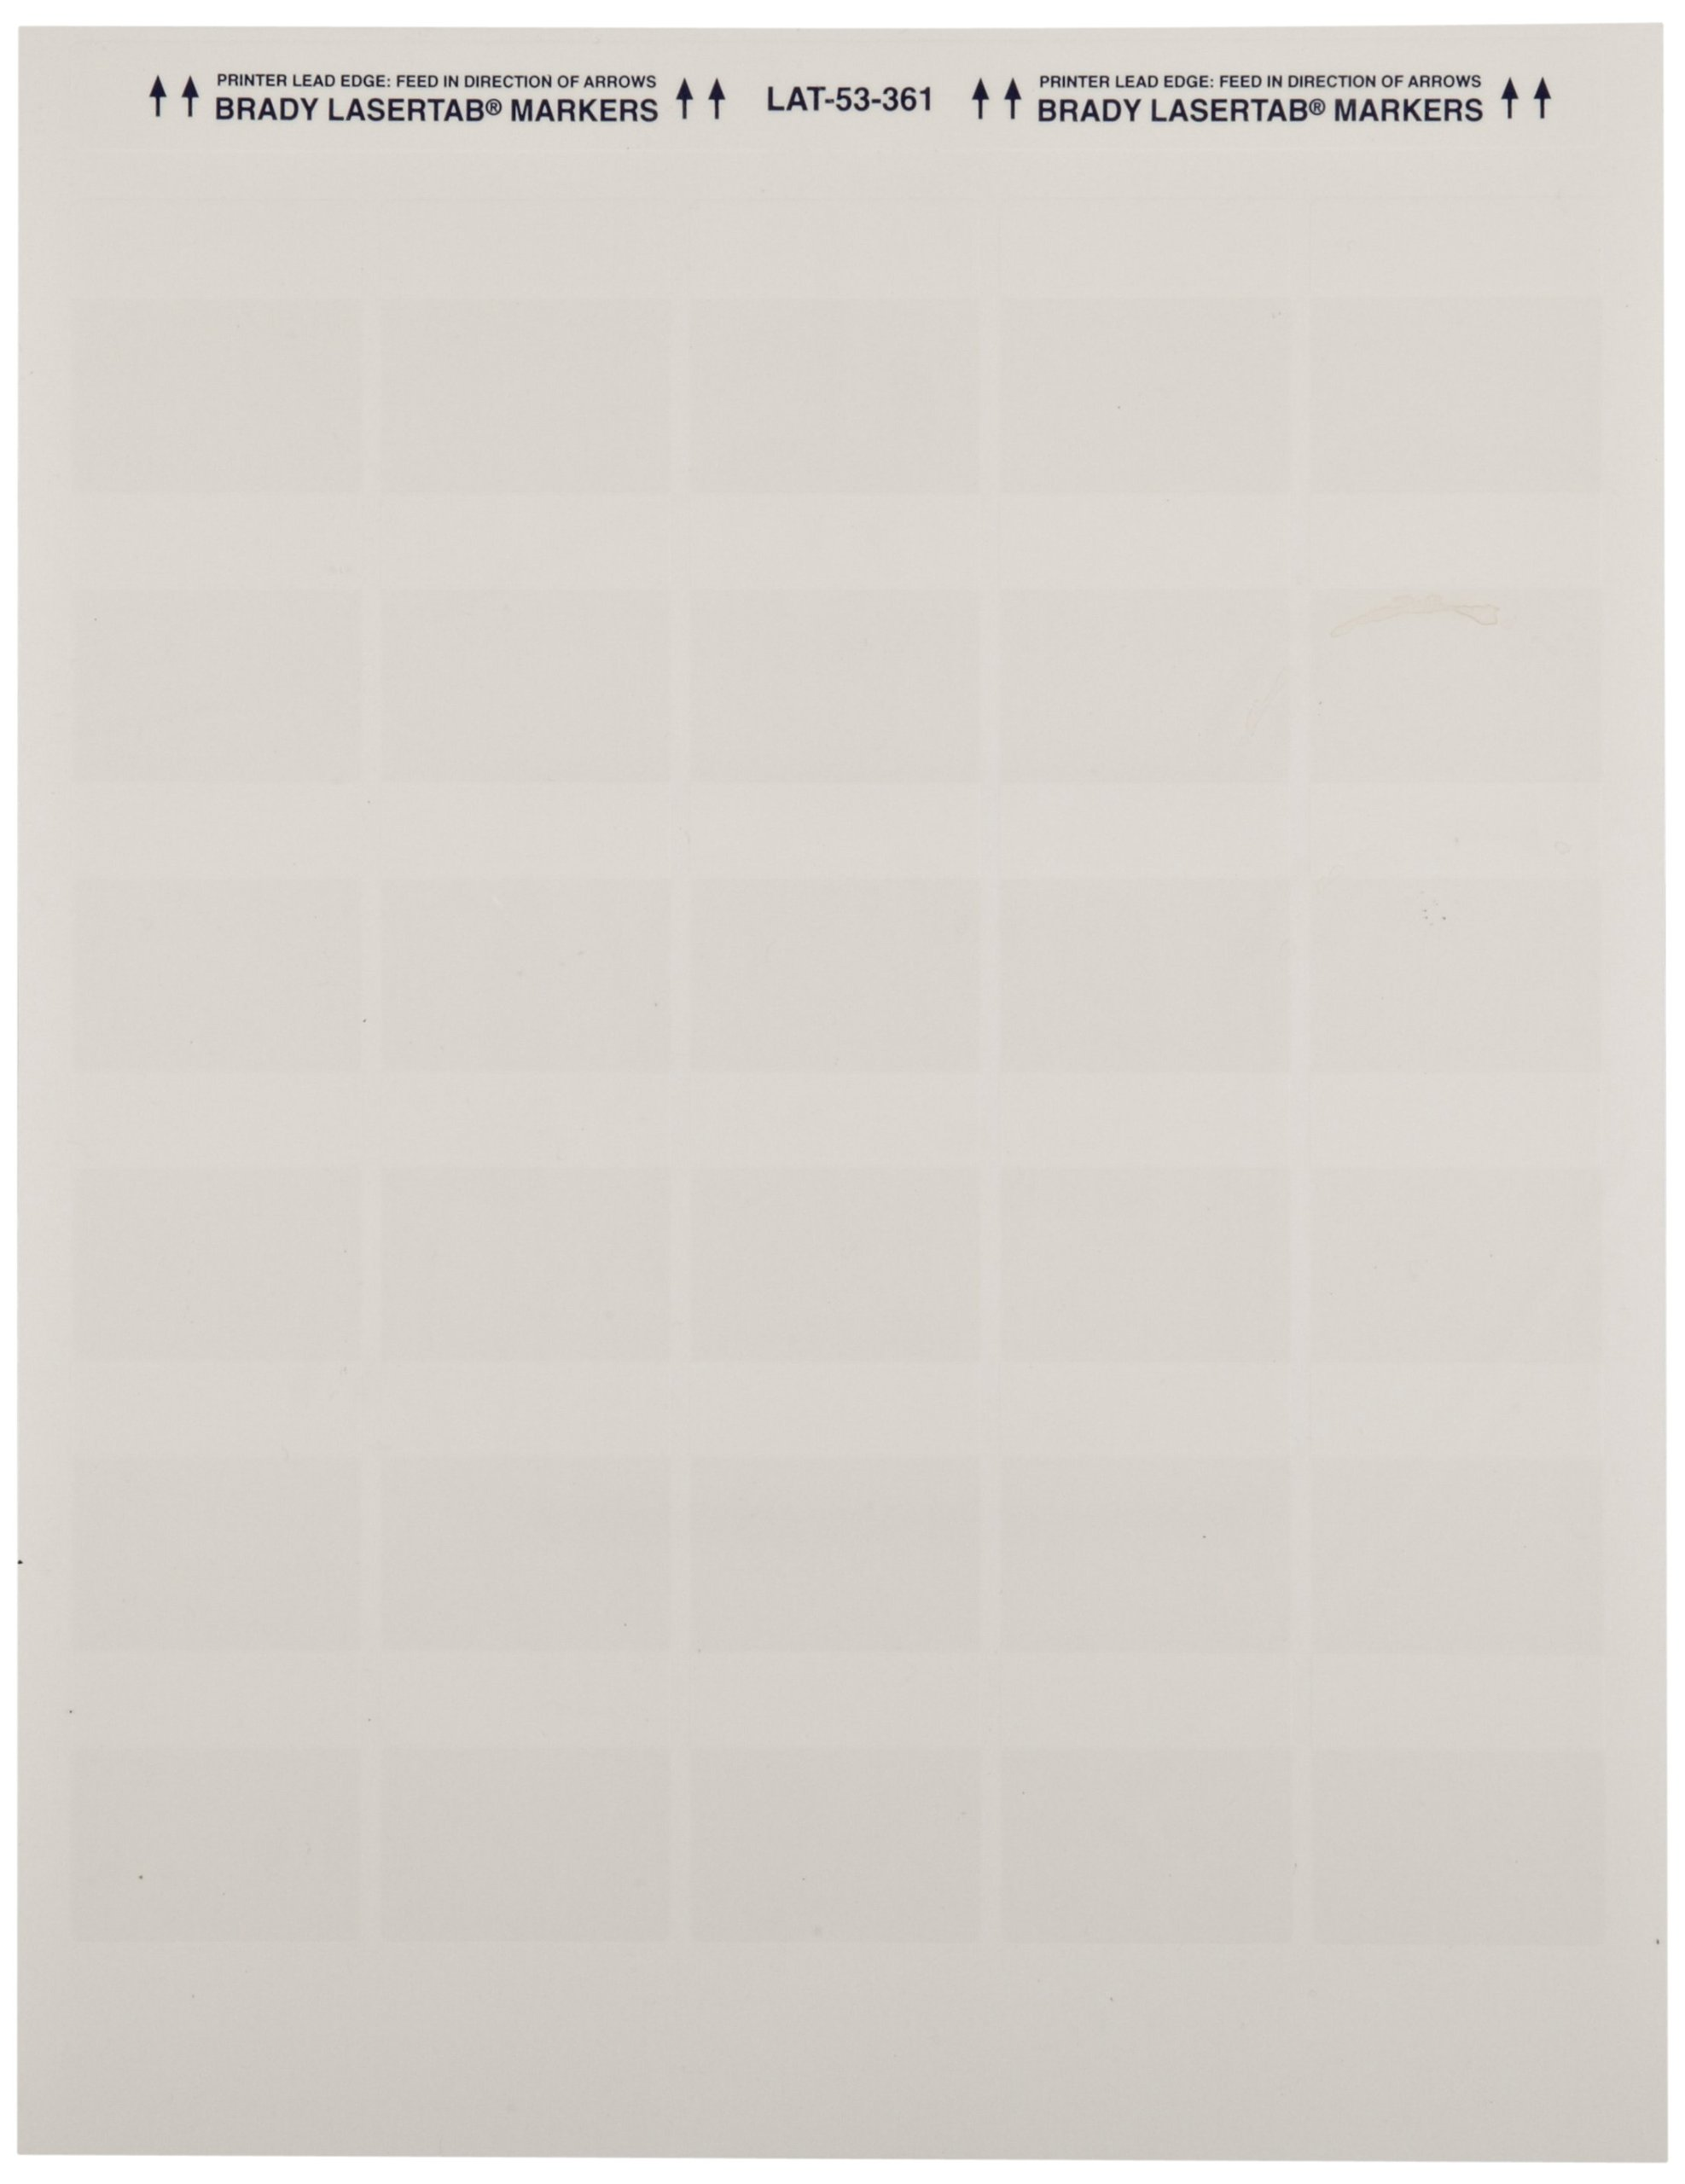 Brady LAT-53-361-1 1.5'' Width x 1.5'' Height, B-361B Self-Laminating Polyester, Matte Finish White/Translucent Laser Printable Label (Pack of 1000)